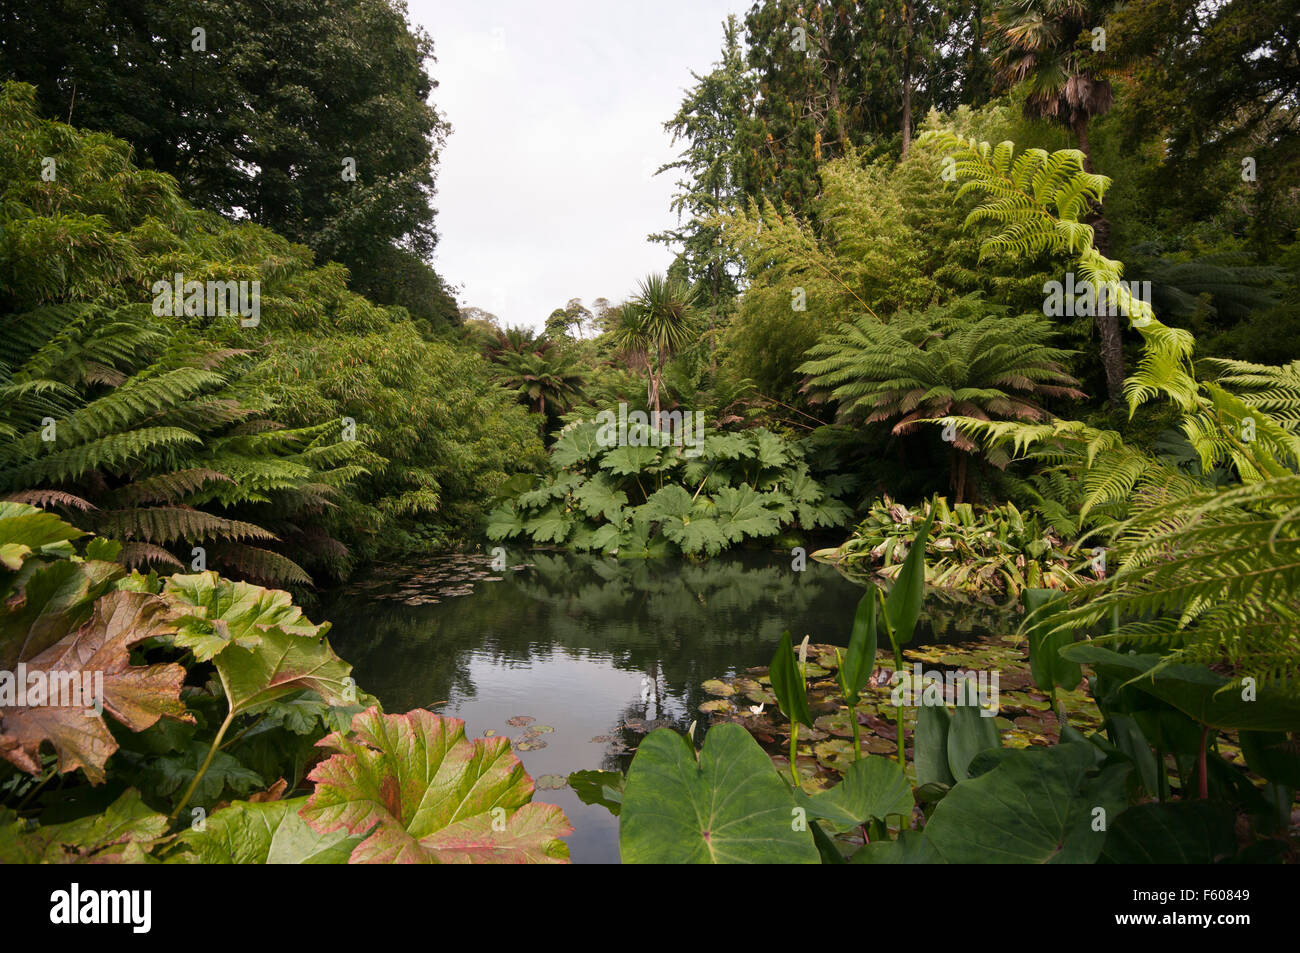 Ferns trees and plants surrounding a pond in the tropical for Garden pond plants uk